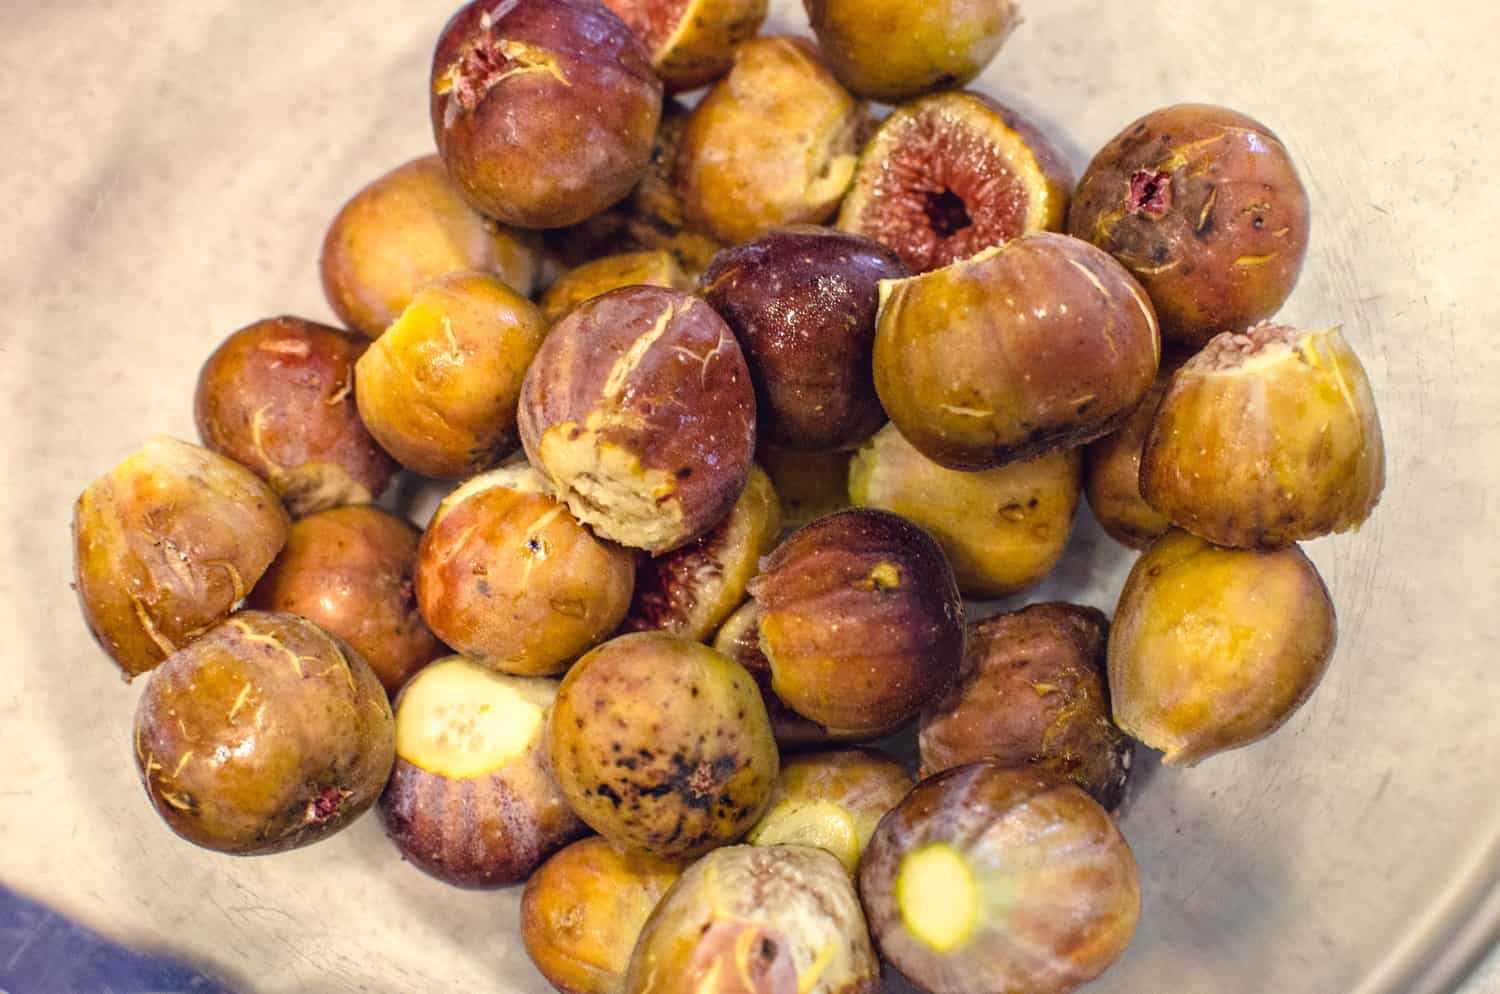 Washed figs with stems removed to make fig preserves recipe